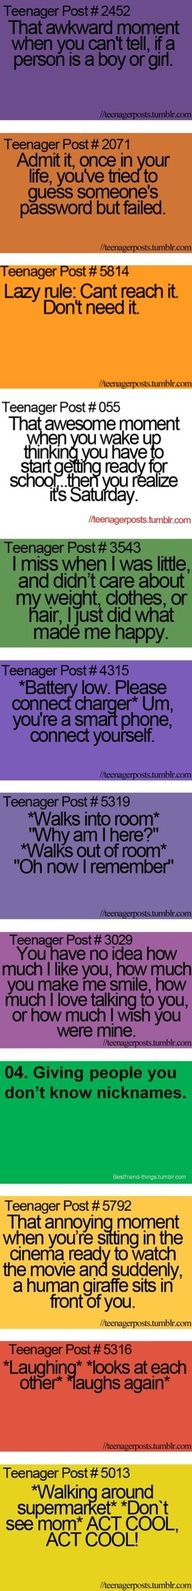 super Ideas funny quotes for teens humor hilarious teenager posts Funny Teen Posts, Teenager Posts, Relatable Posts, Teen Quotes, Funny Quotes, Funny Humor, Mom Quotes, Funny Stuff, Funny Teenager Quotes